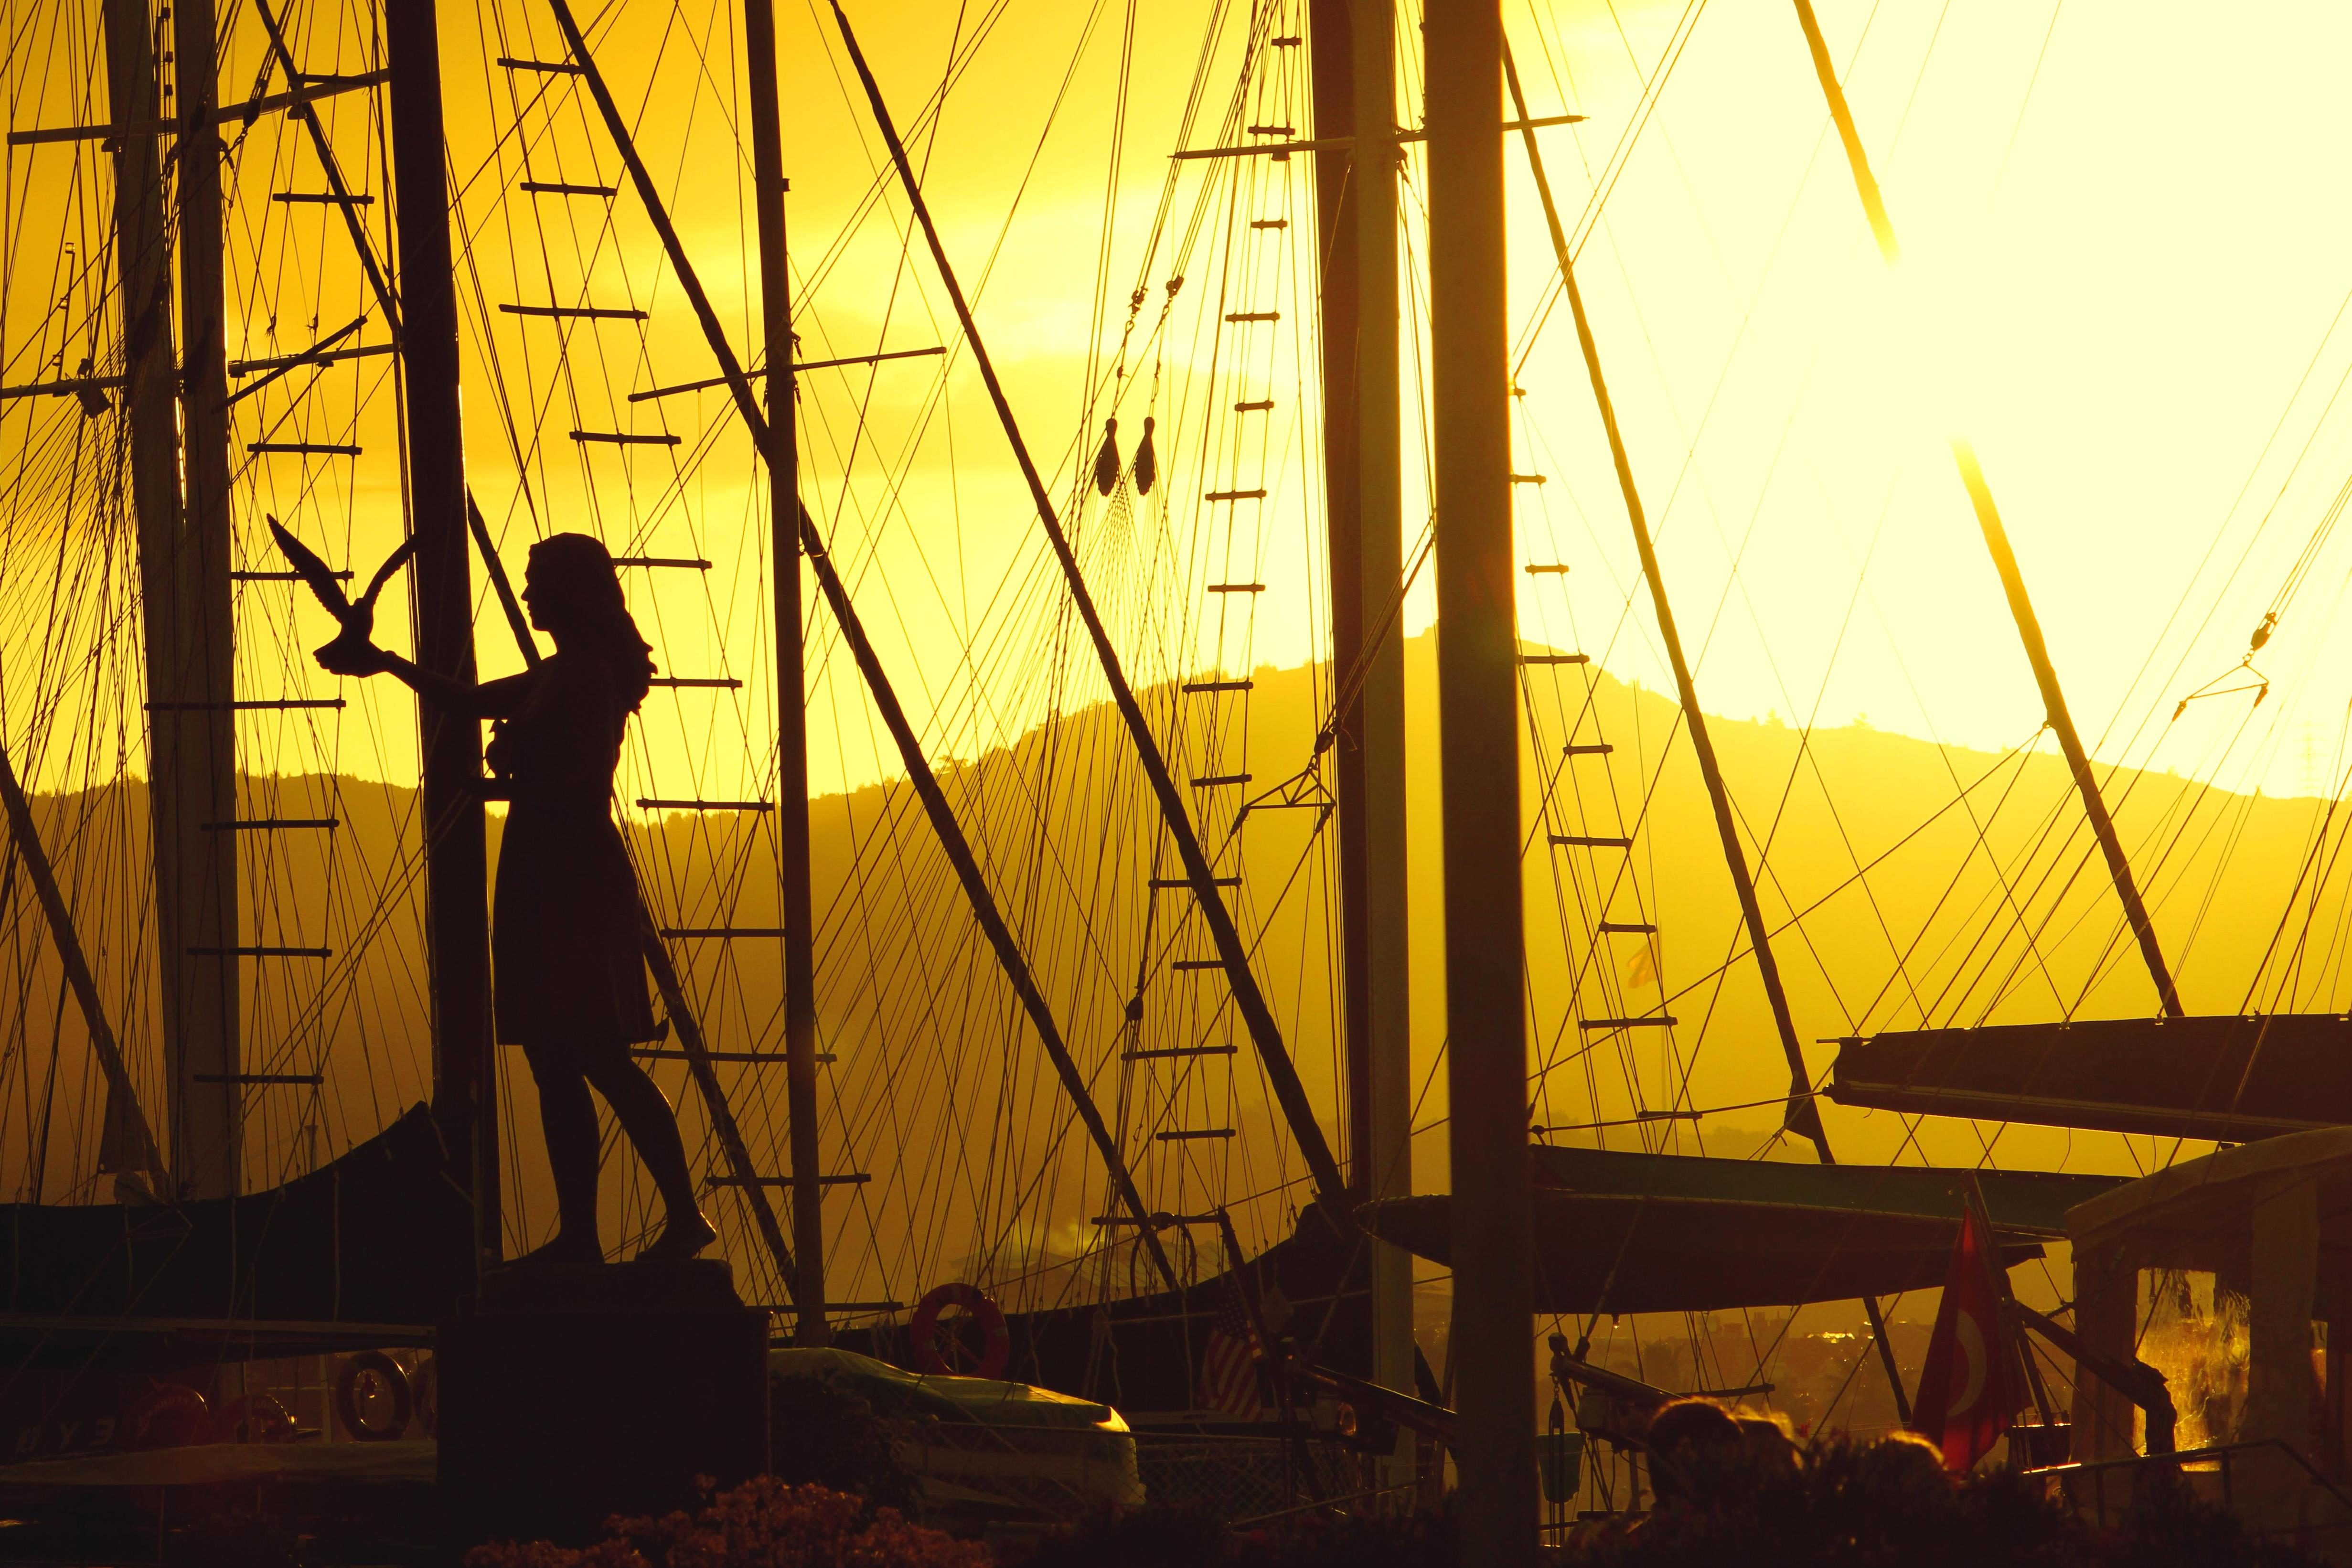 free picture silhouette ship sail ship summer girl